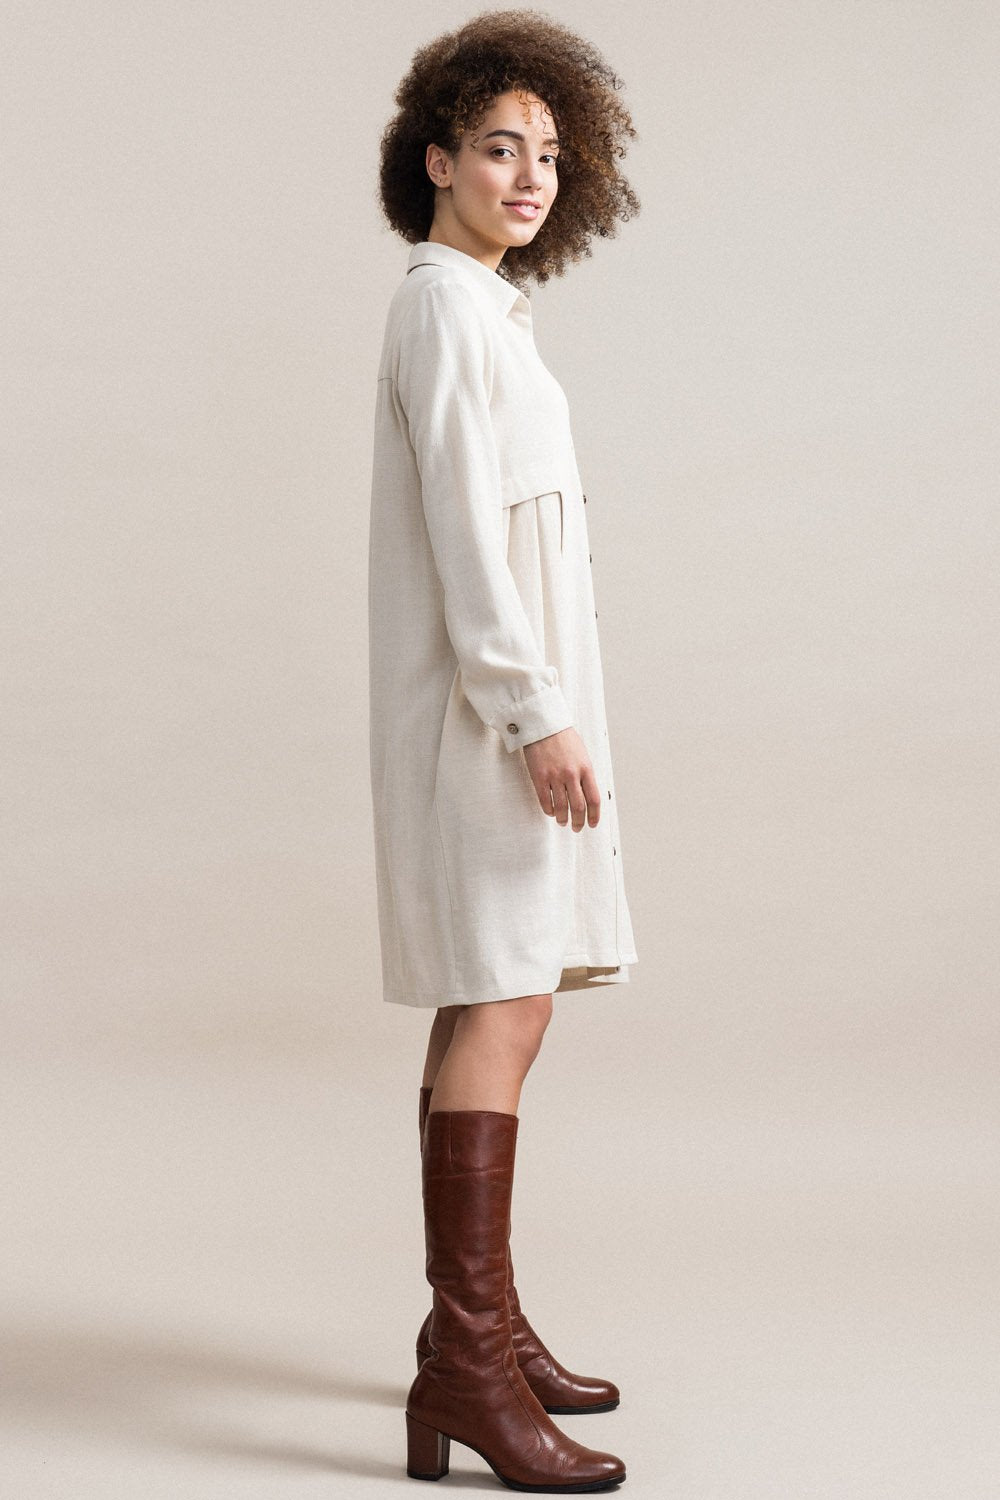 JENNIFER GLASGOW Inari Shirt Dress in Natural (side view, full length) FW2020/2021